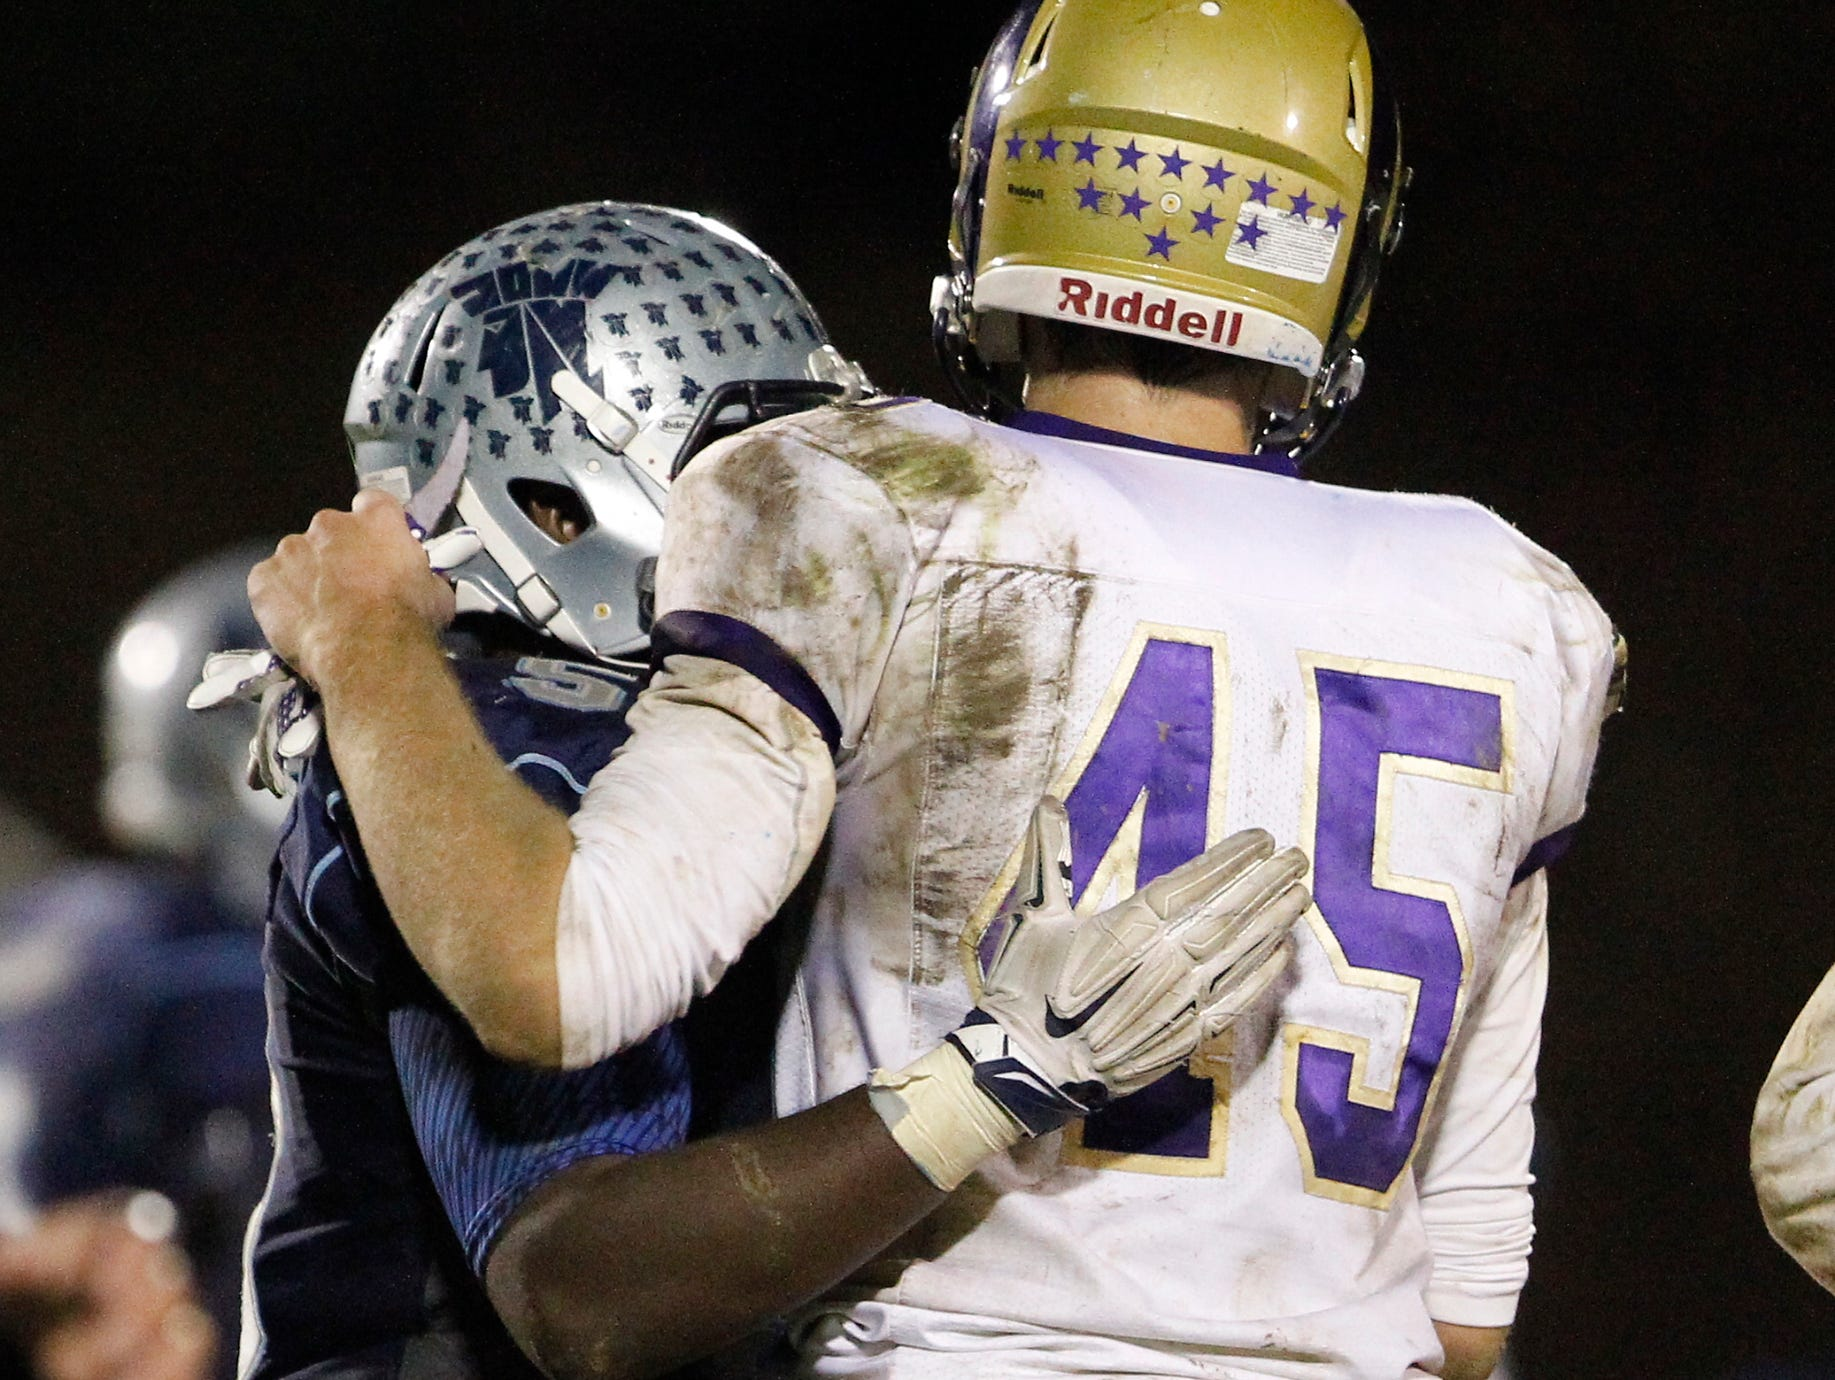 Clarkstown North's Martin Mulvey congratulates John Jay's Andrew Anthony (5) after their 21-7 loss to John Jay High School in the class AA semi-final football game in East Fishkill on Friday, Oct. 30, 2015.